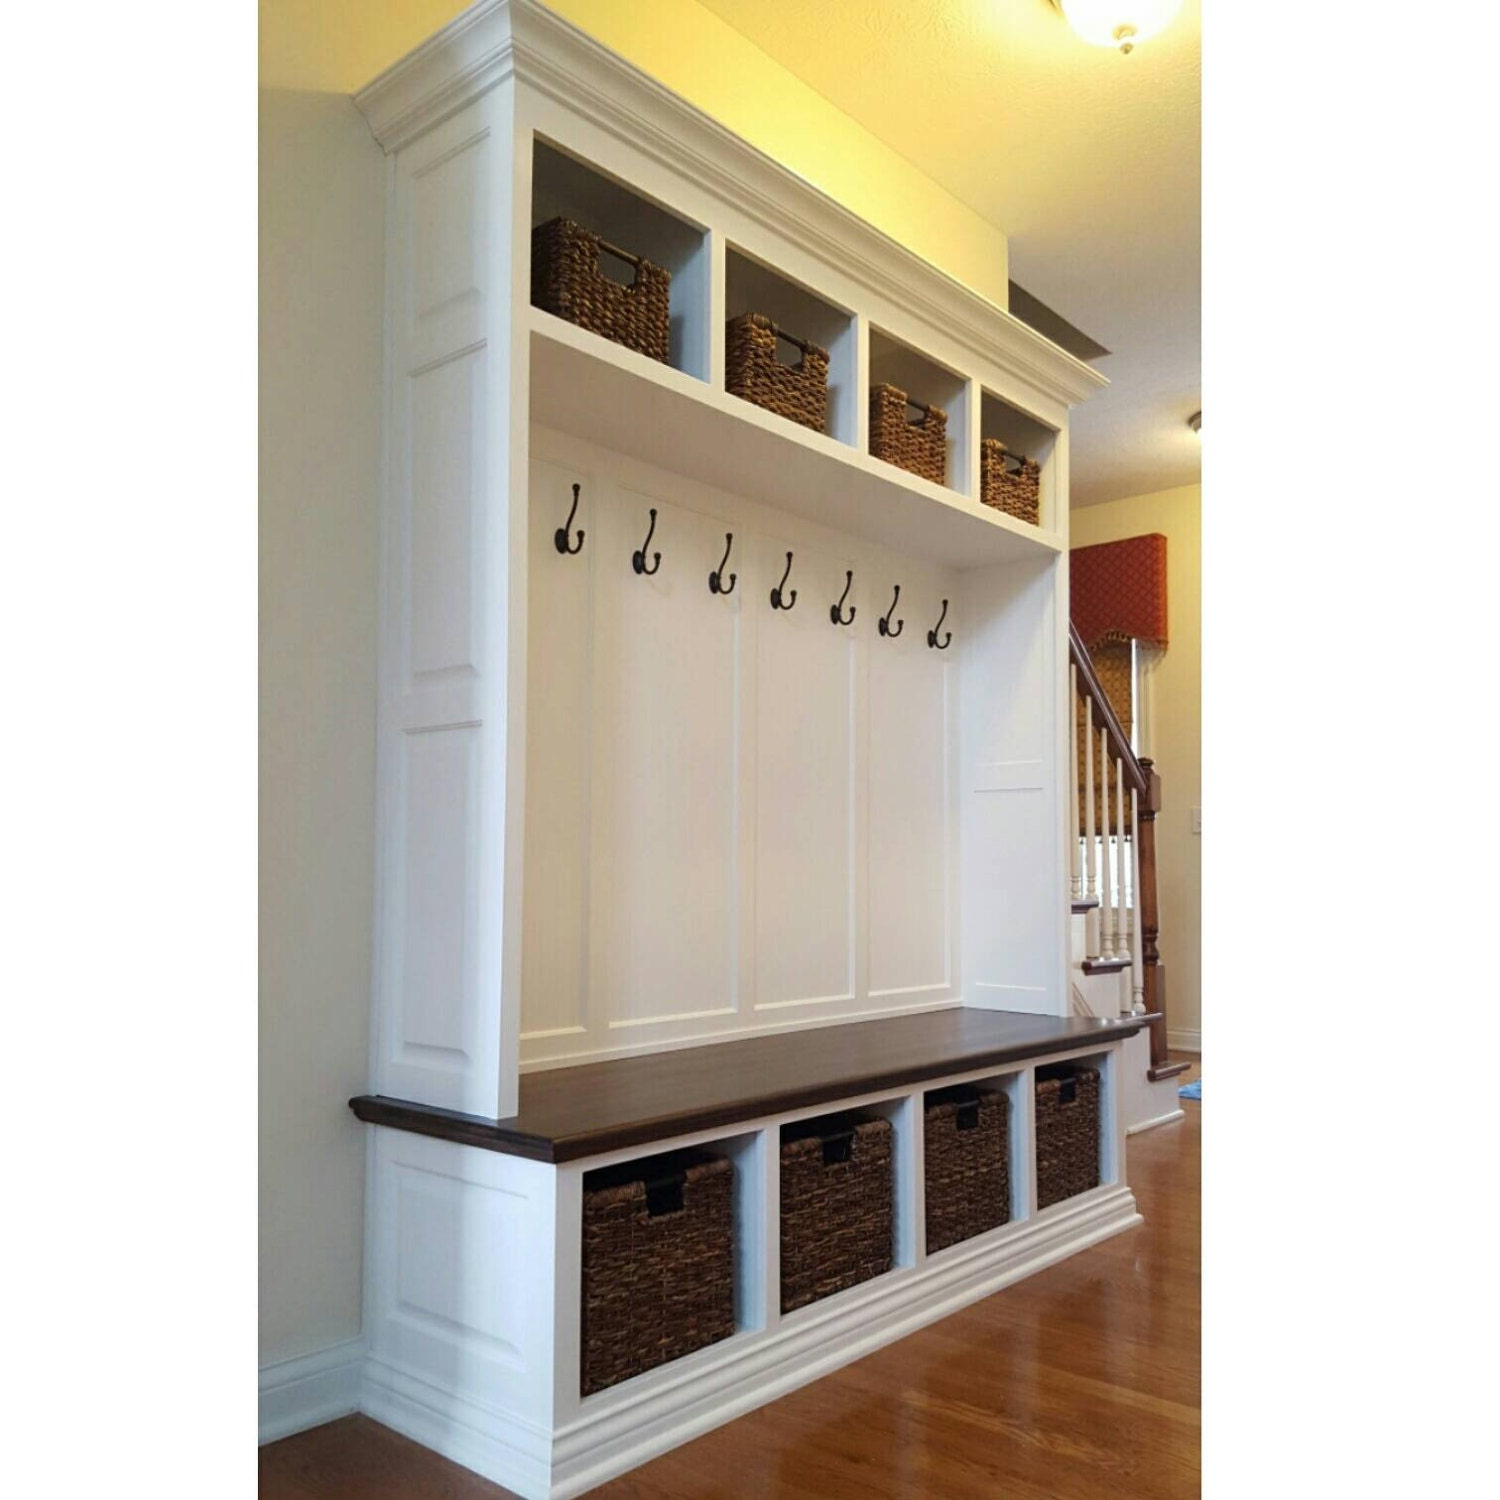 Mudroom Storage For Sale : Sale mudroom lockers bench storage furniture